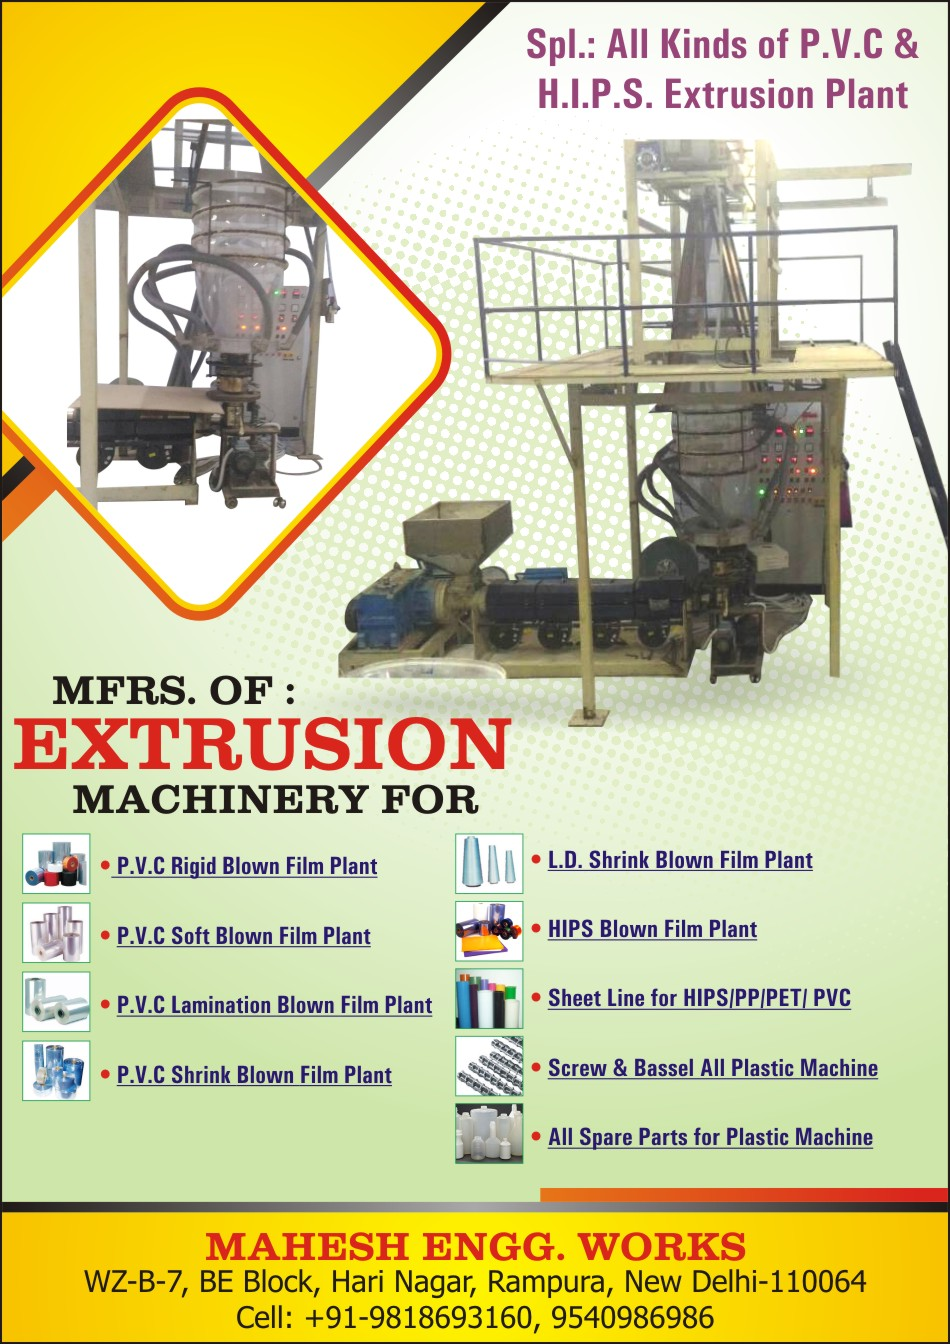 PVC Extrusion Plant, HIPS Extrusion Plant, PVC Rigid Blown Film, Plastic Machine Spare Part, Plastic Machine Screw, Plastic Machine Barrel, HIPS Sheet Line, PP Sheet Line, PET Sheet Line, PVC Sheet Line, HIPS Blown Film Extrusion Machine, LD Shrink Blown Film Extrusion Machine, PVC Rigid Blown Film Extrusion Machine, PVC Soft Blow Film Extrusion Machine, PVC Lamination Blow Film Extrusion Machine, PVC Shrink Blown Film Extrusion Machine